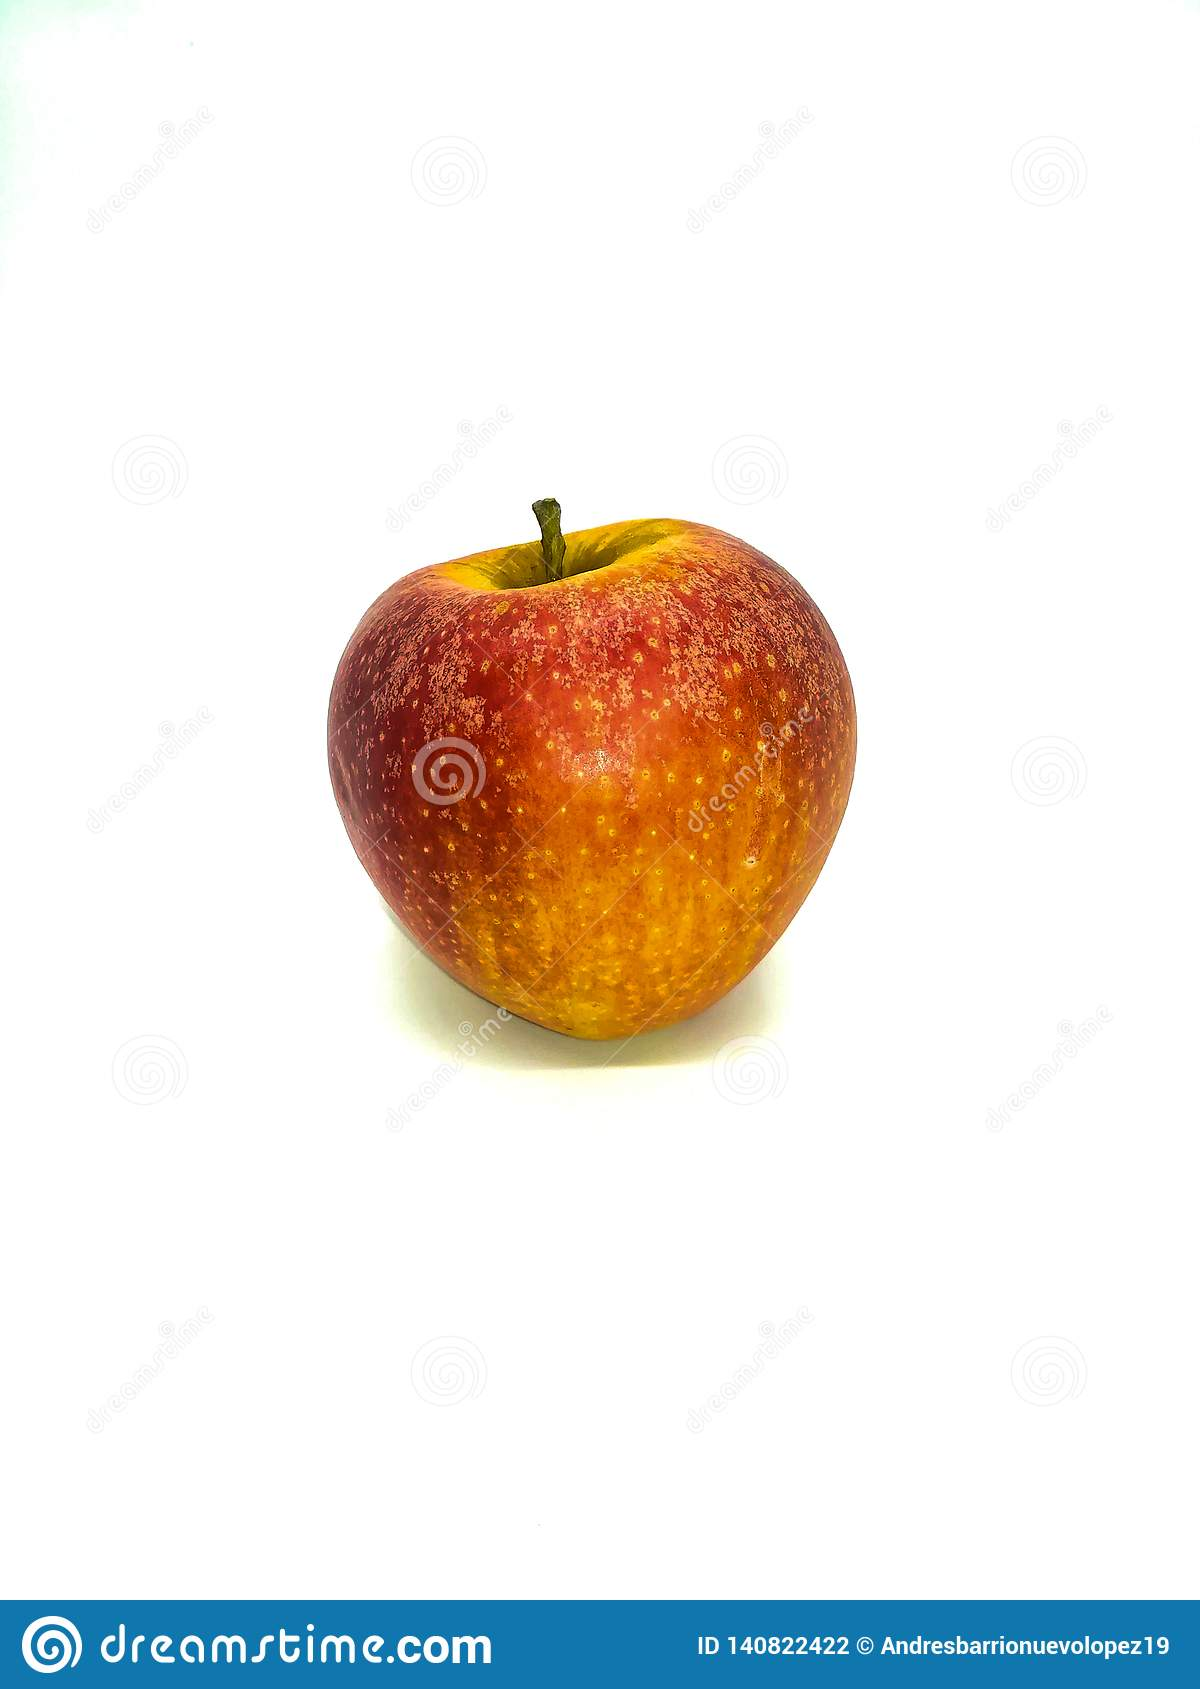 Red apple with yellow specks